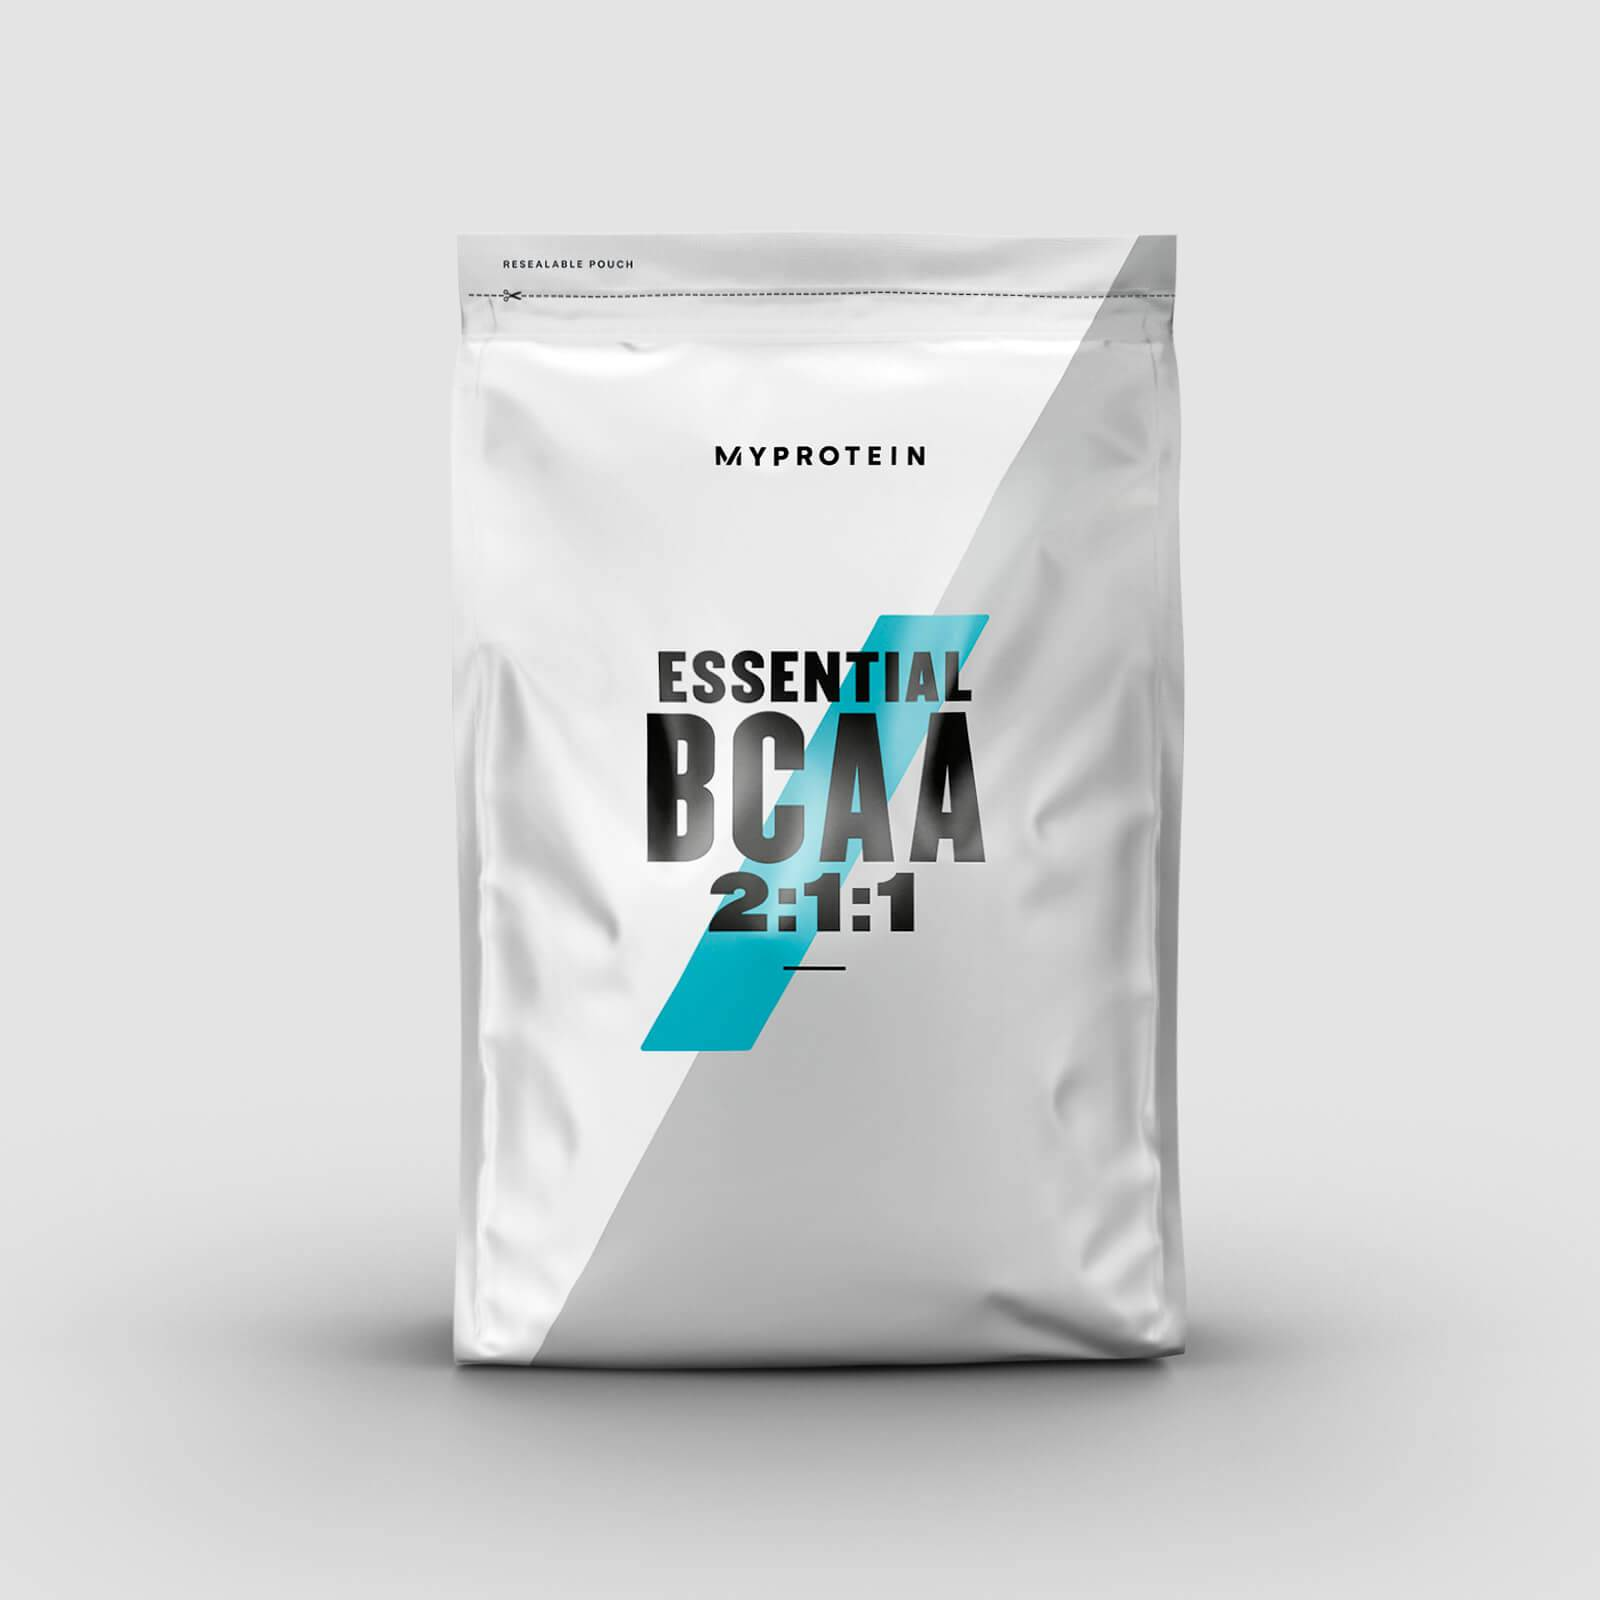 Myprotein Essential BCAA 2:1:1 Powder - 500g - Gin and Tonic